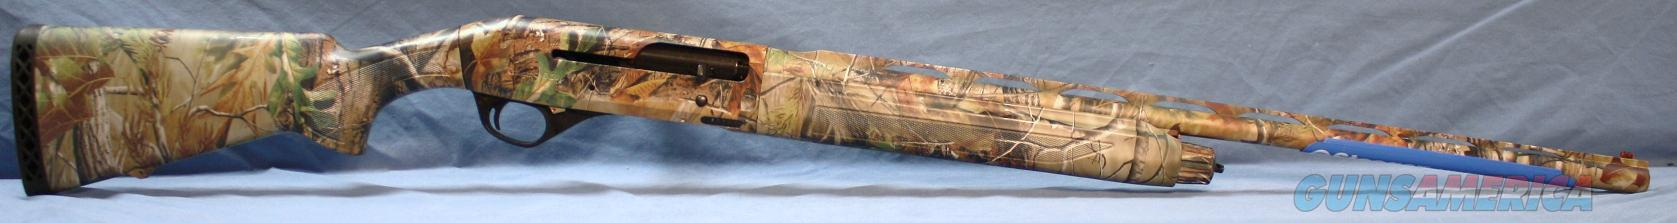 Stoeger M3020 Semi-Automatic Shotgun 20 gauge Free Shipping and No Credit  Card Fees!